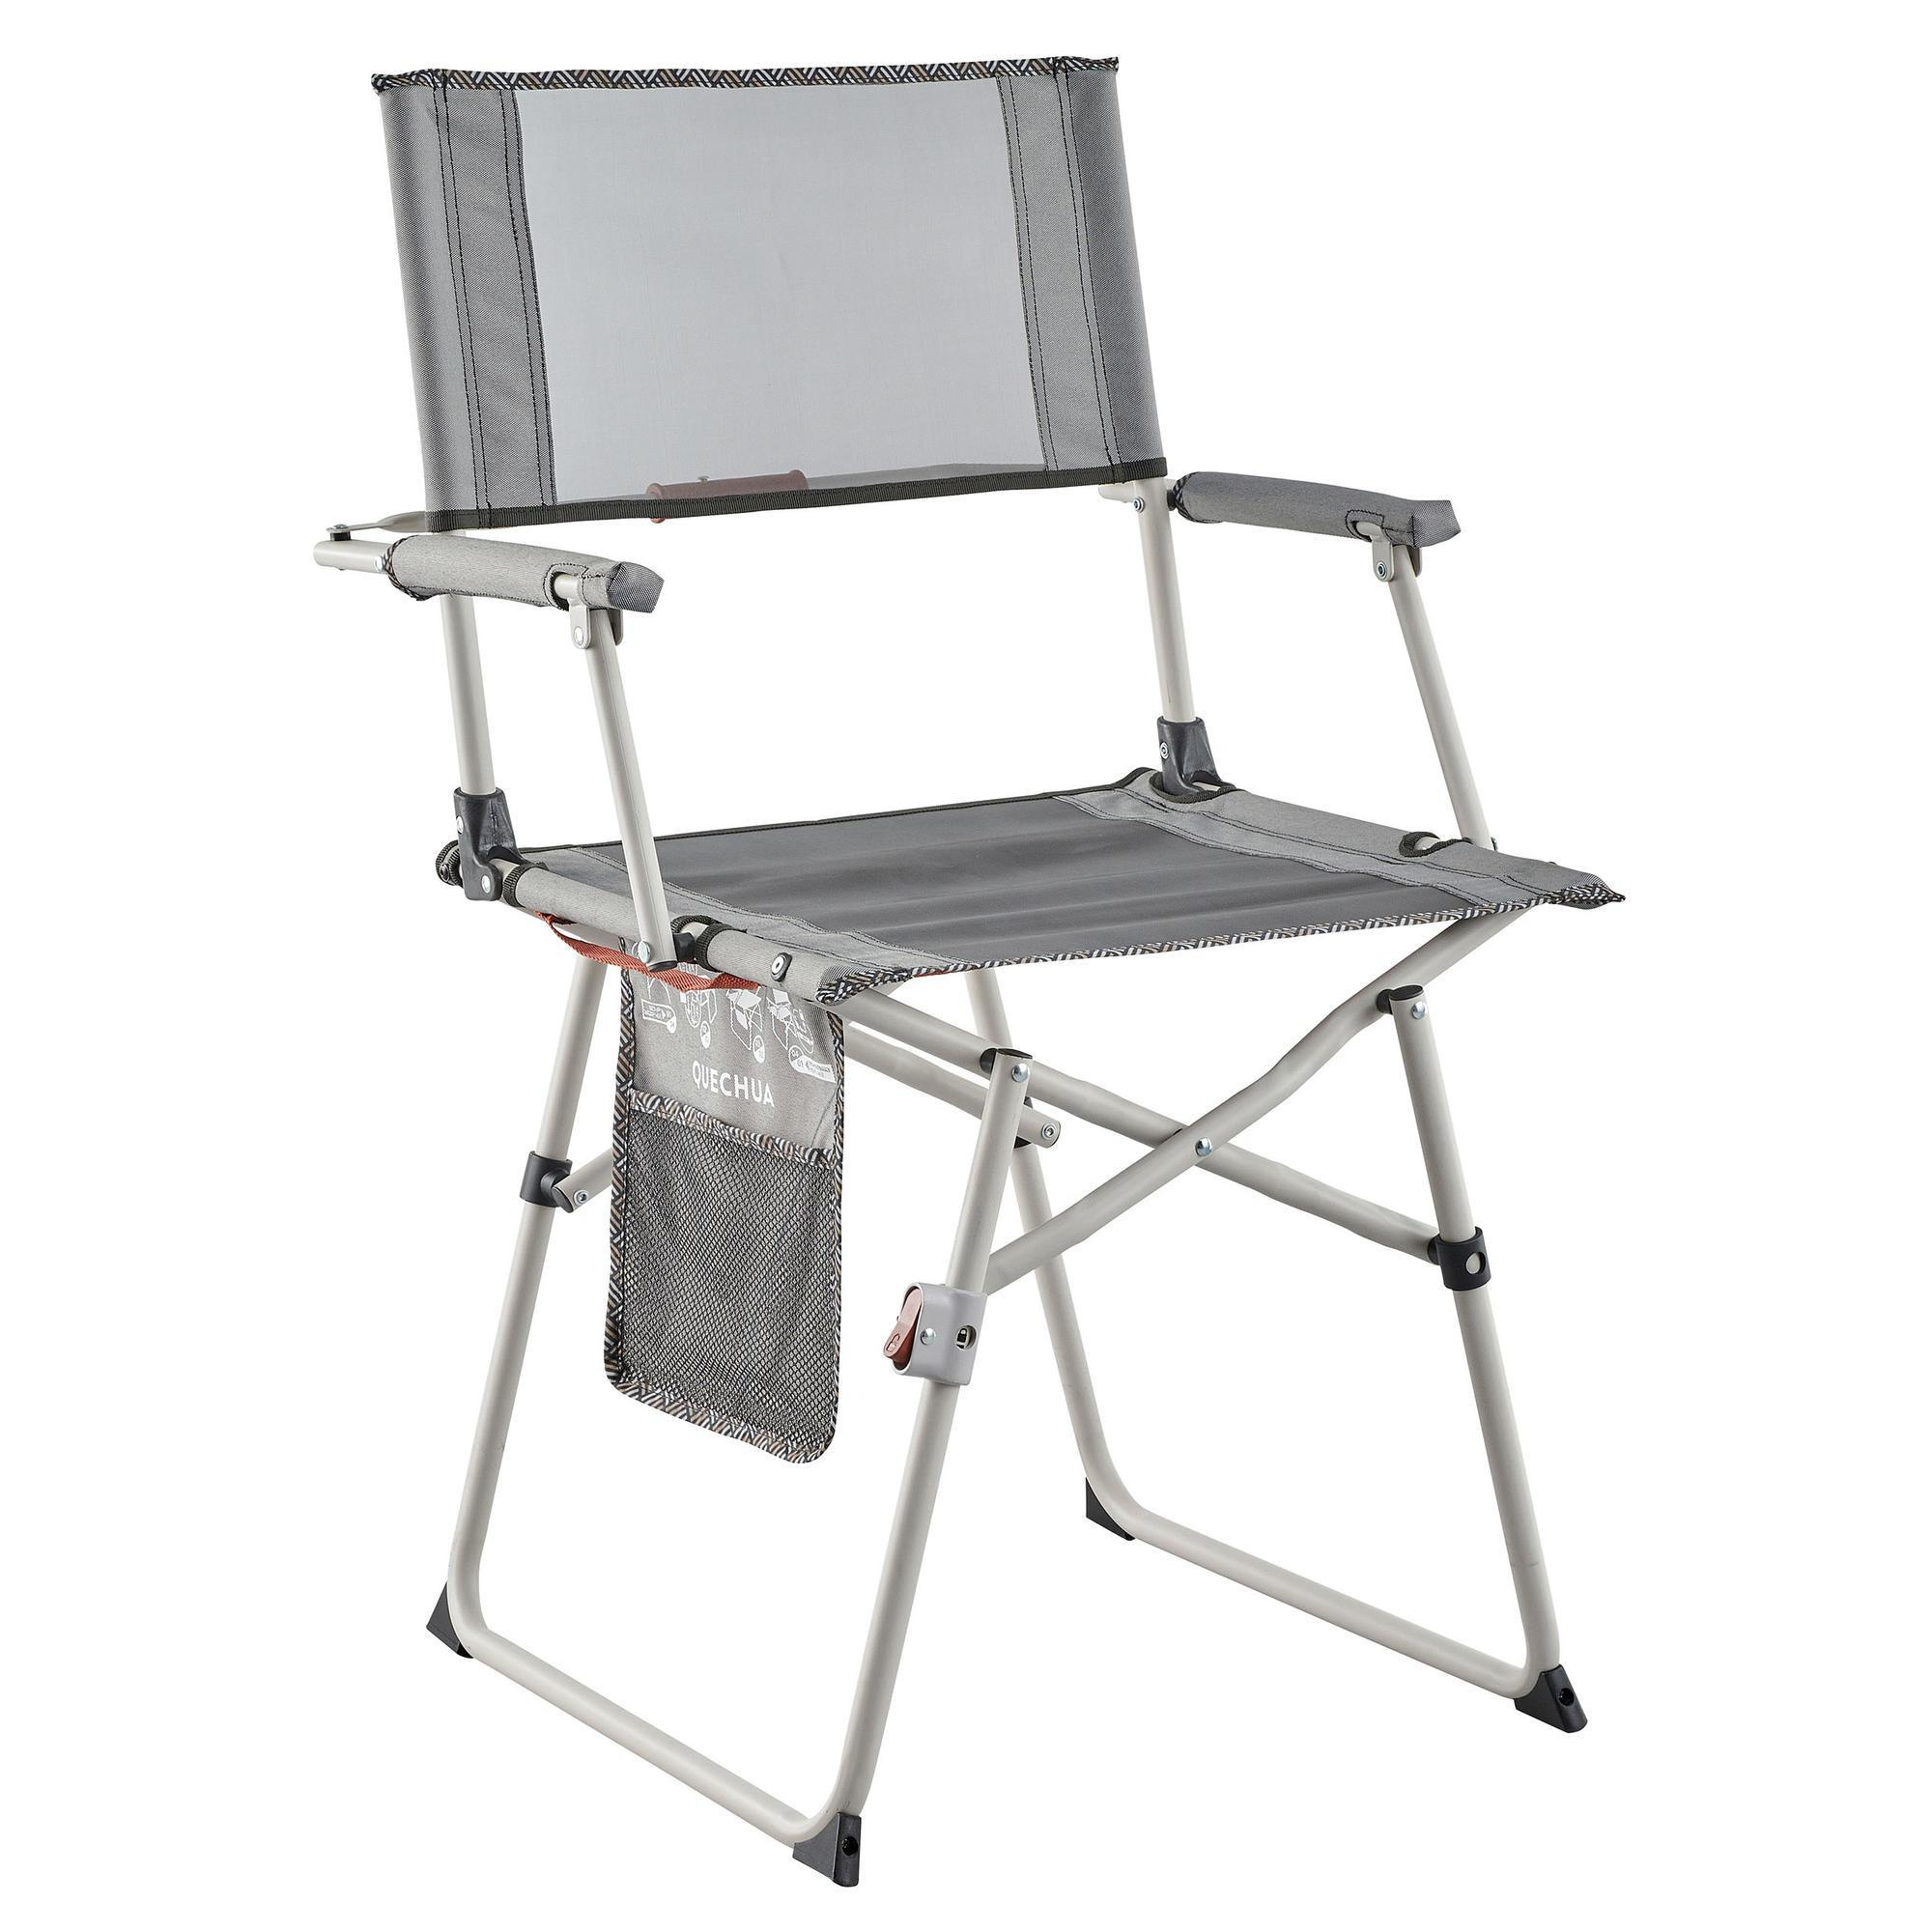 Gris Robuste Portable Voyage Camping REALISATEUR Chaise Avec Poches /& Table